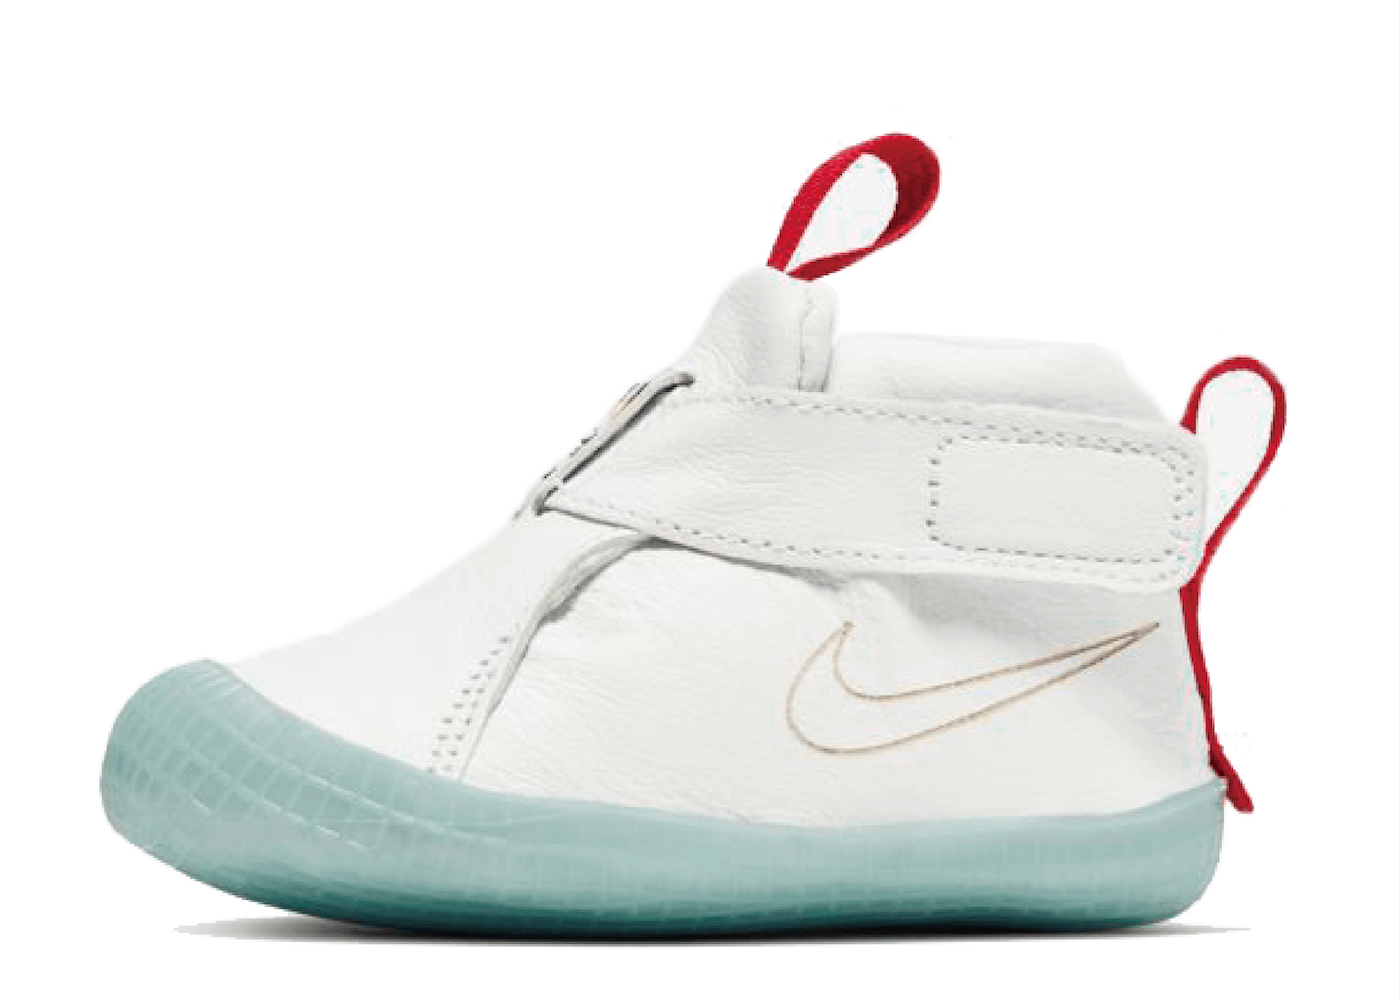 Nike Mars Yard 2.0 OverShoe Tom Sachs Infantsの写真